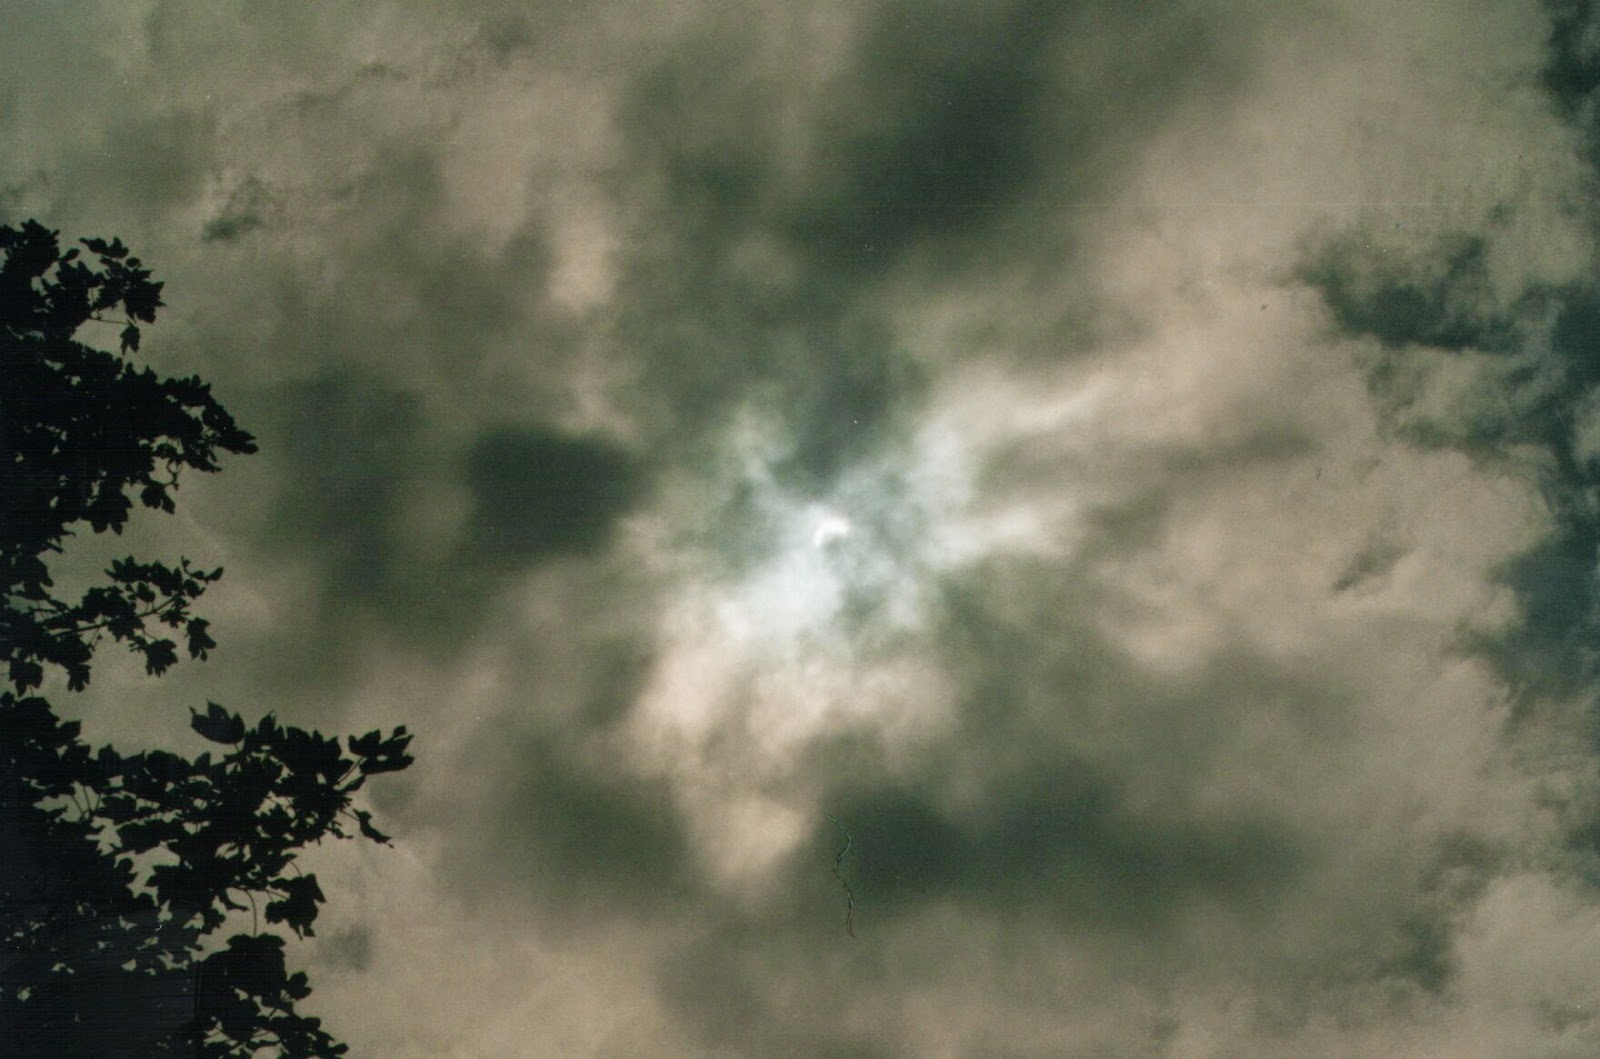 Eclipse 11 Aug 99 Llangollen Canal